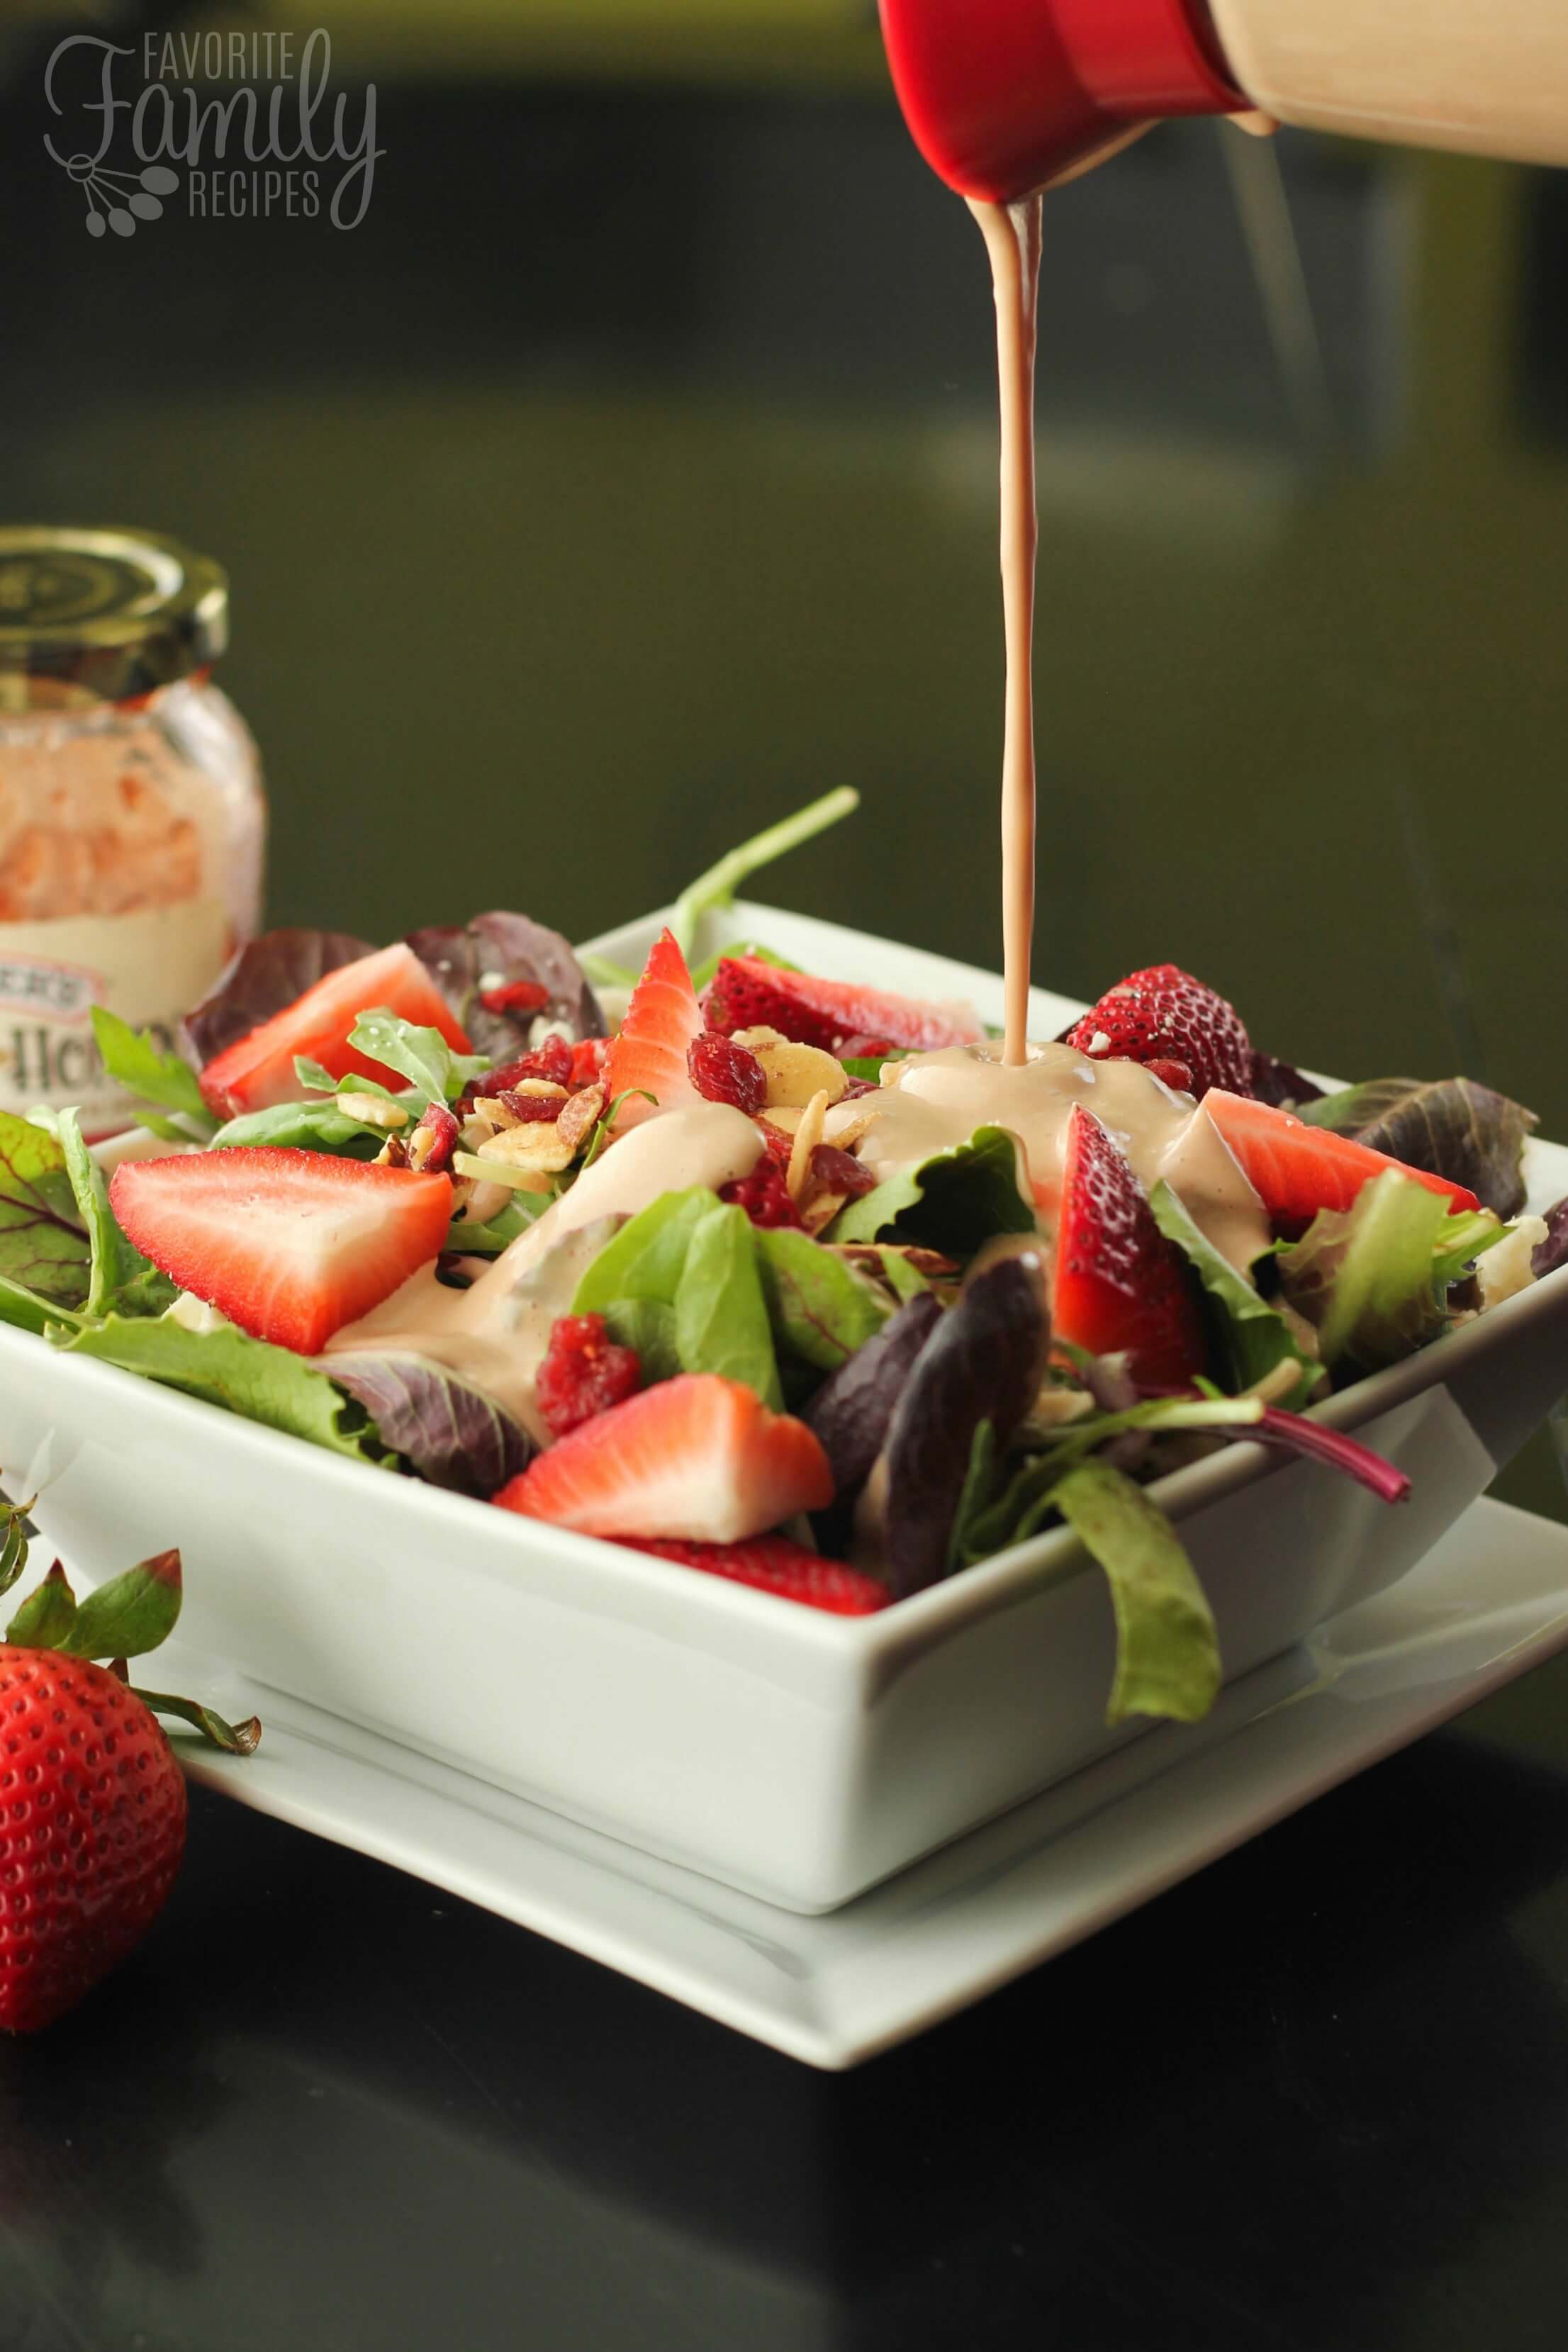 Creamy Strawberry Balsamic Dressing Favorite Family Recipes